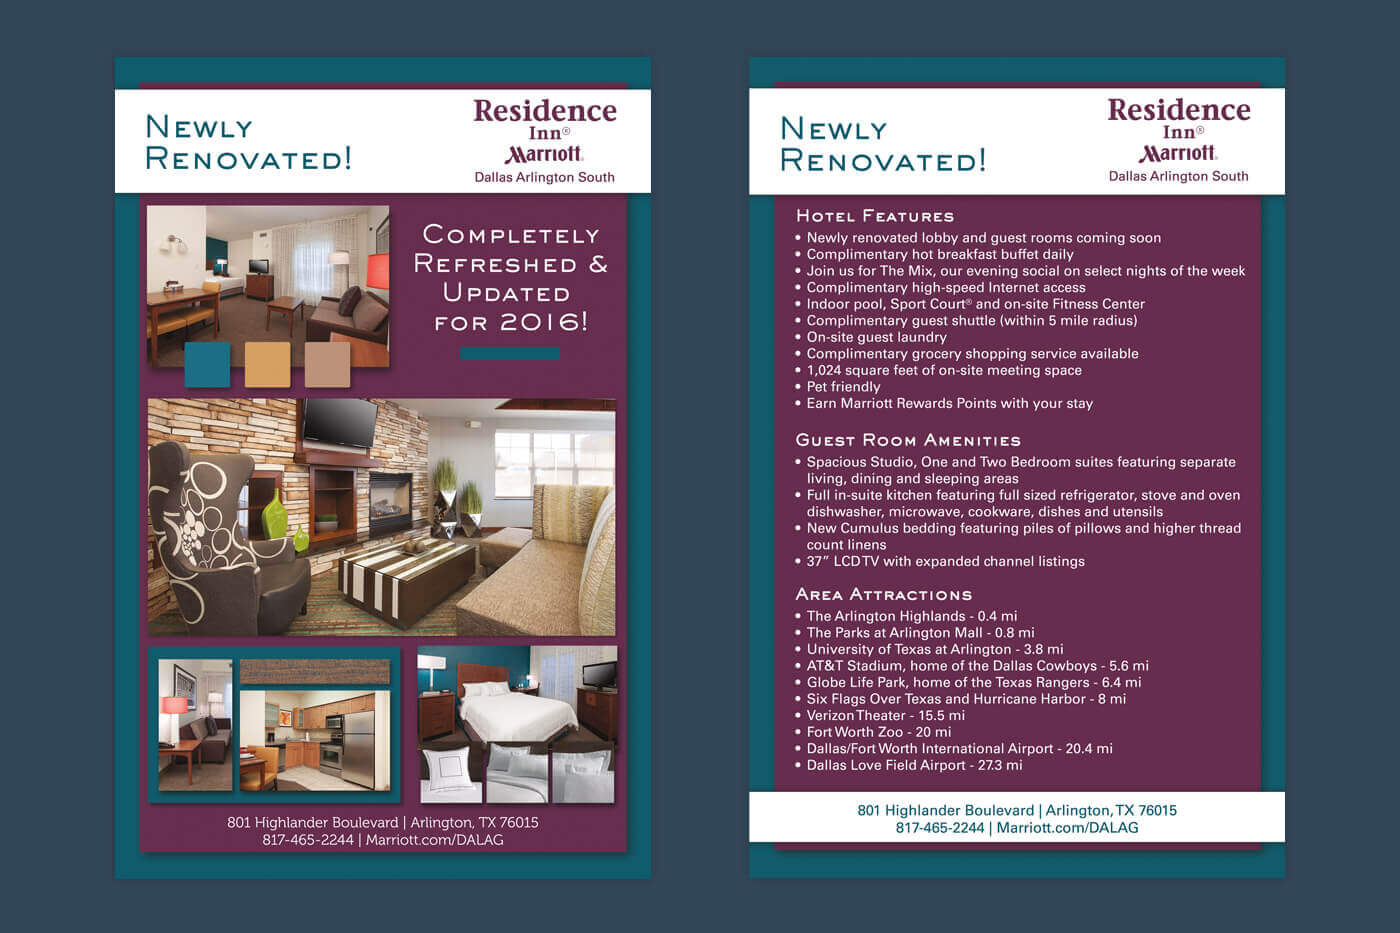 Flyer Design - Residence Inn Dallas Arlington South